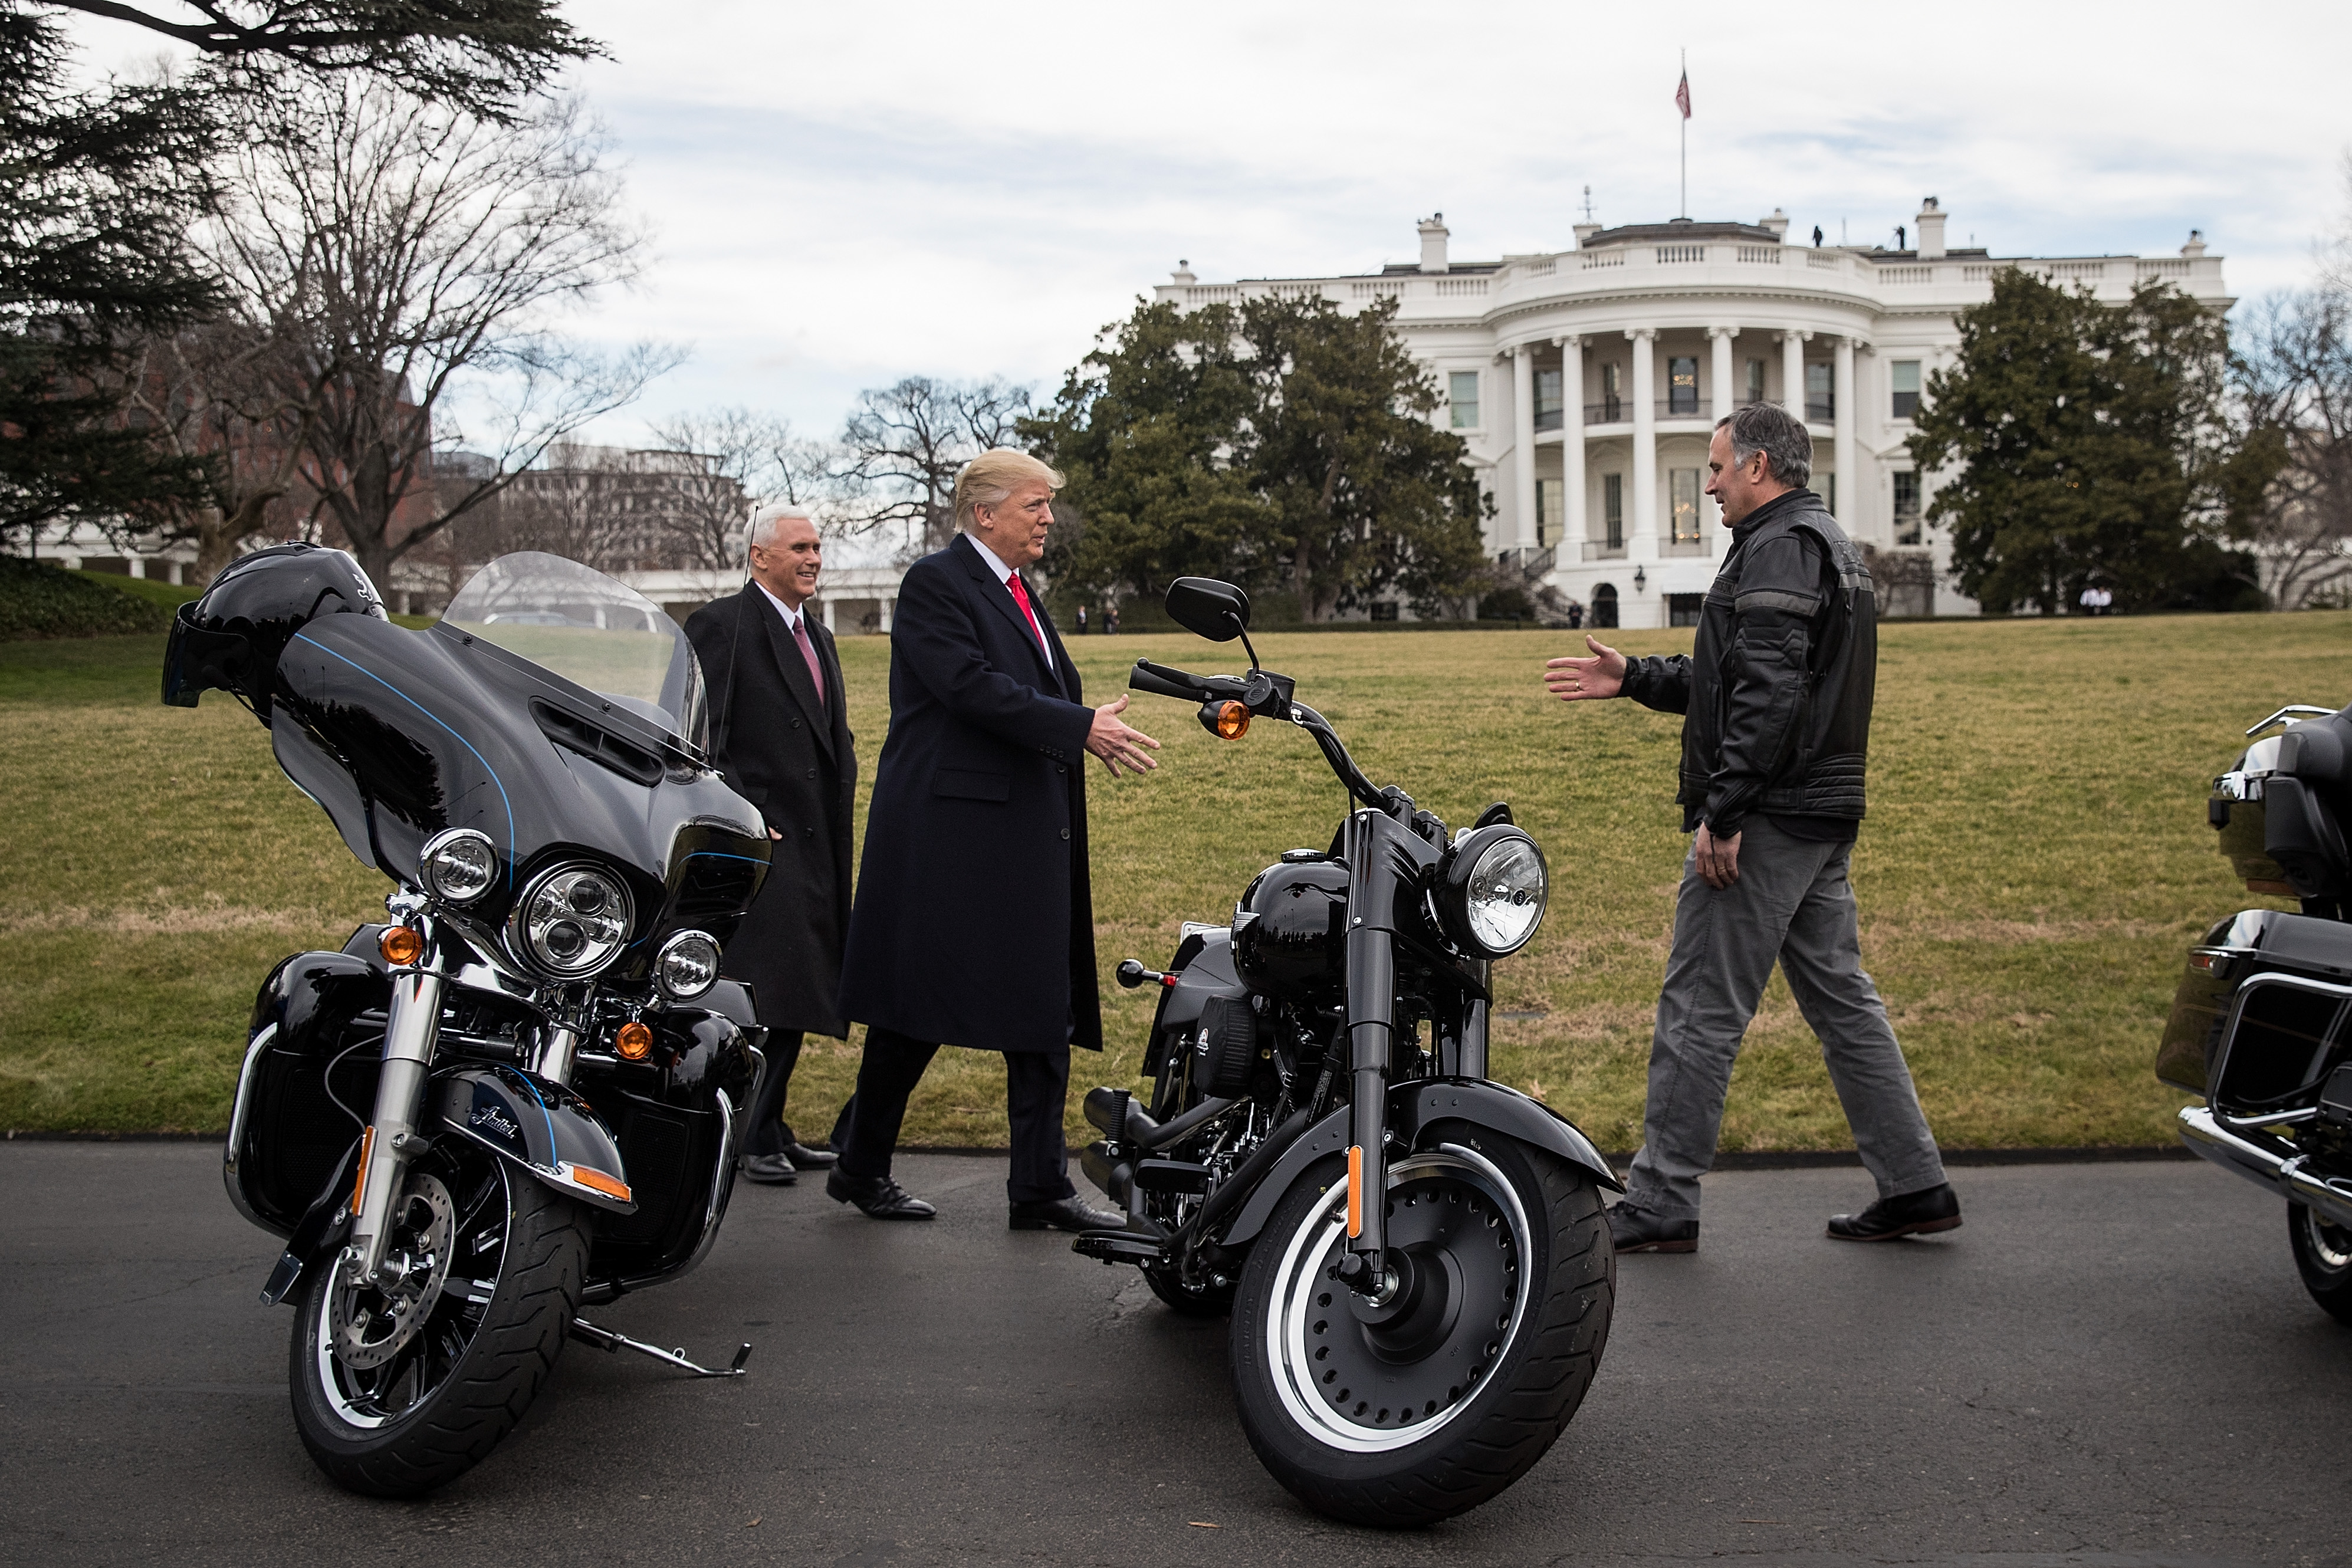 Vice President Mike Pence and President Donald Trump stand beside motorcycles and greet Harley Davidson CEO Matthew Levatich on the South Lawn of the White House, February 2, 2017 in Washington, DC.